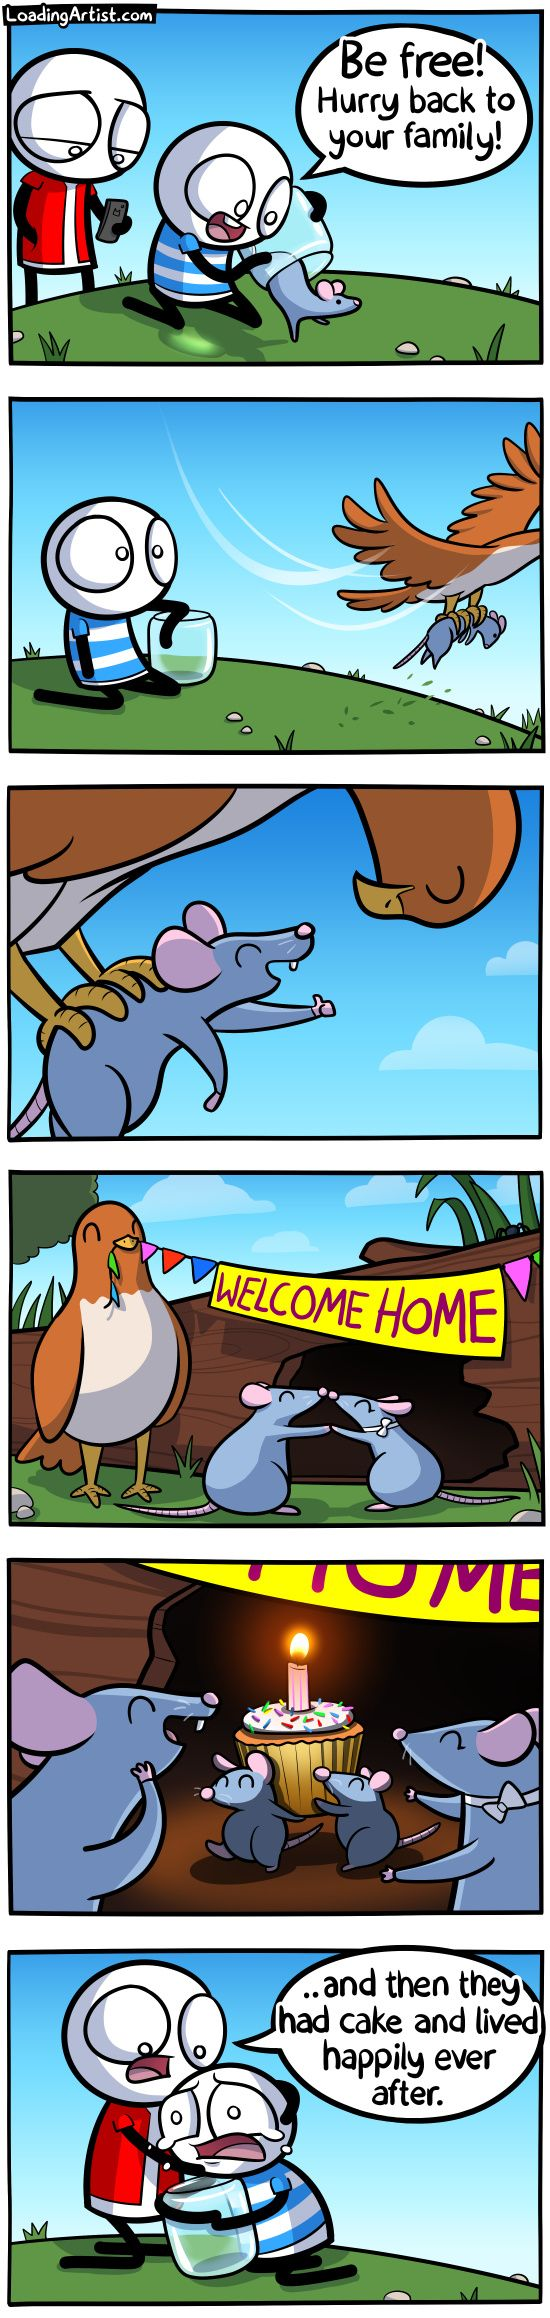 The early bird grabs the mouse. Set it free. Loaded artist webcomic. Fun comic about a good deed gone wrong and comfort from friends